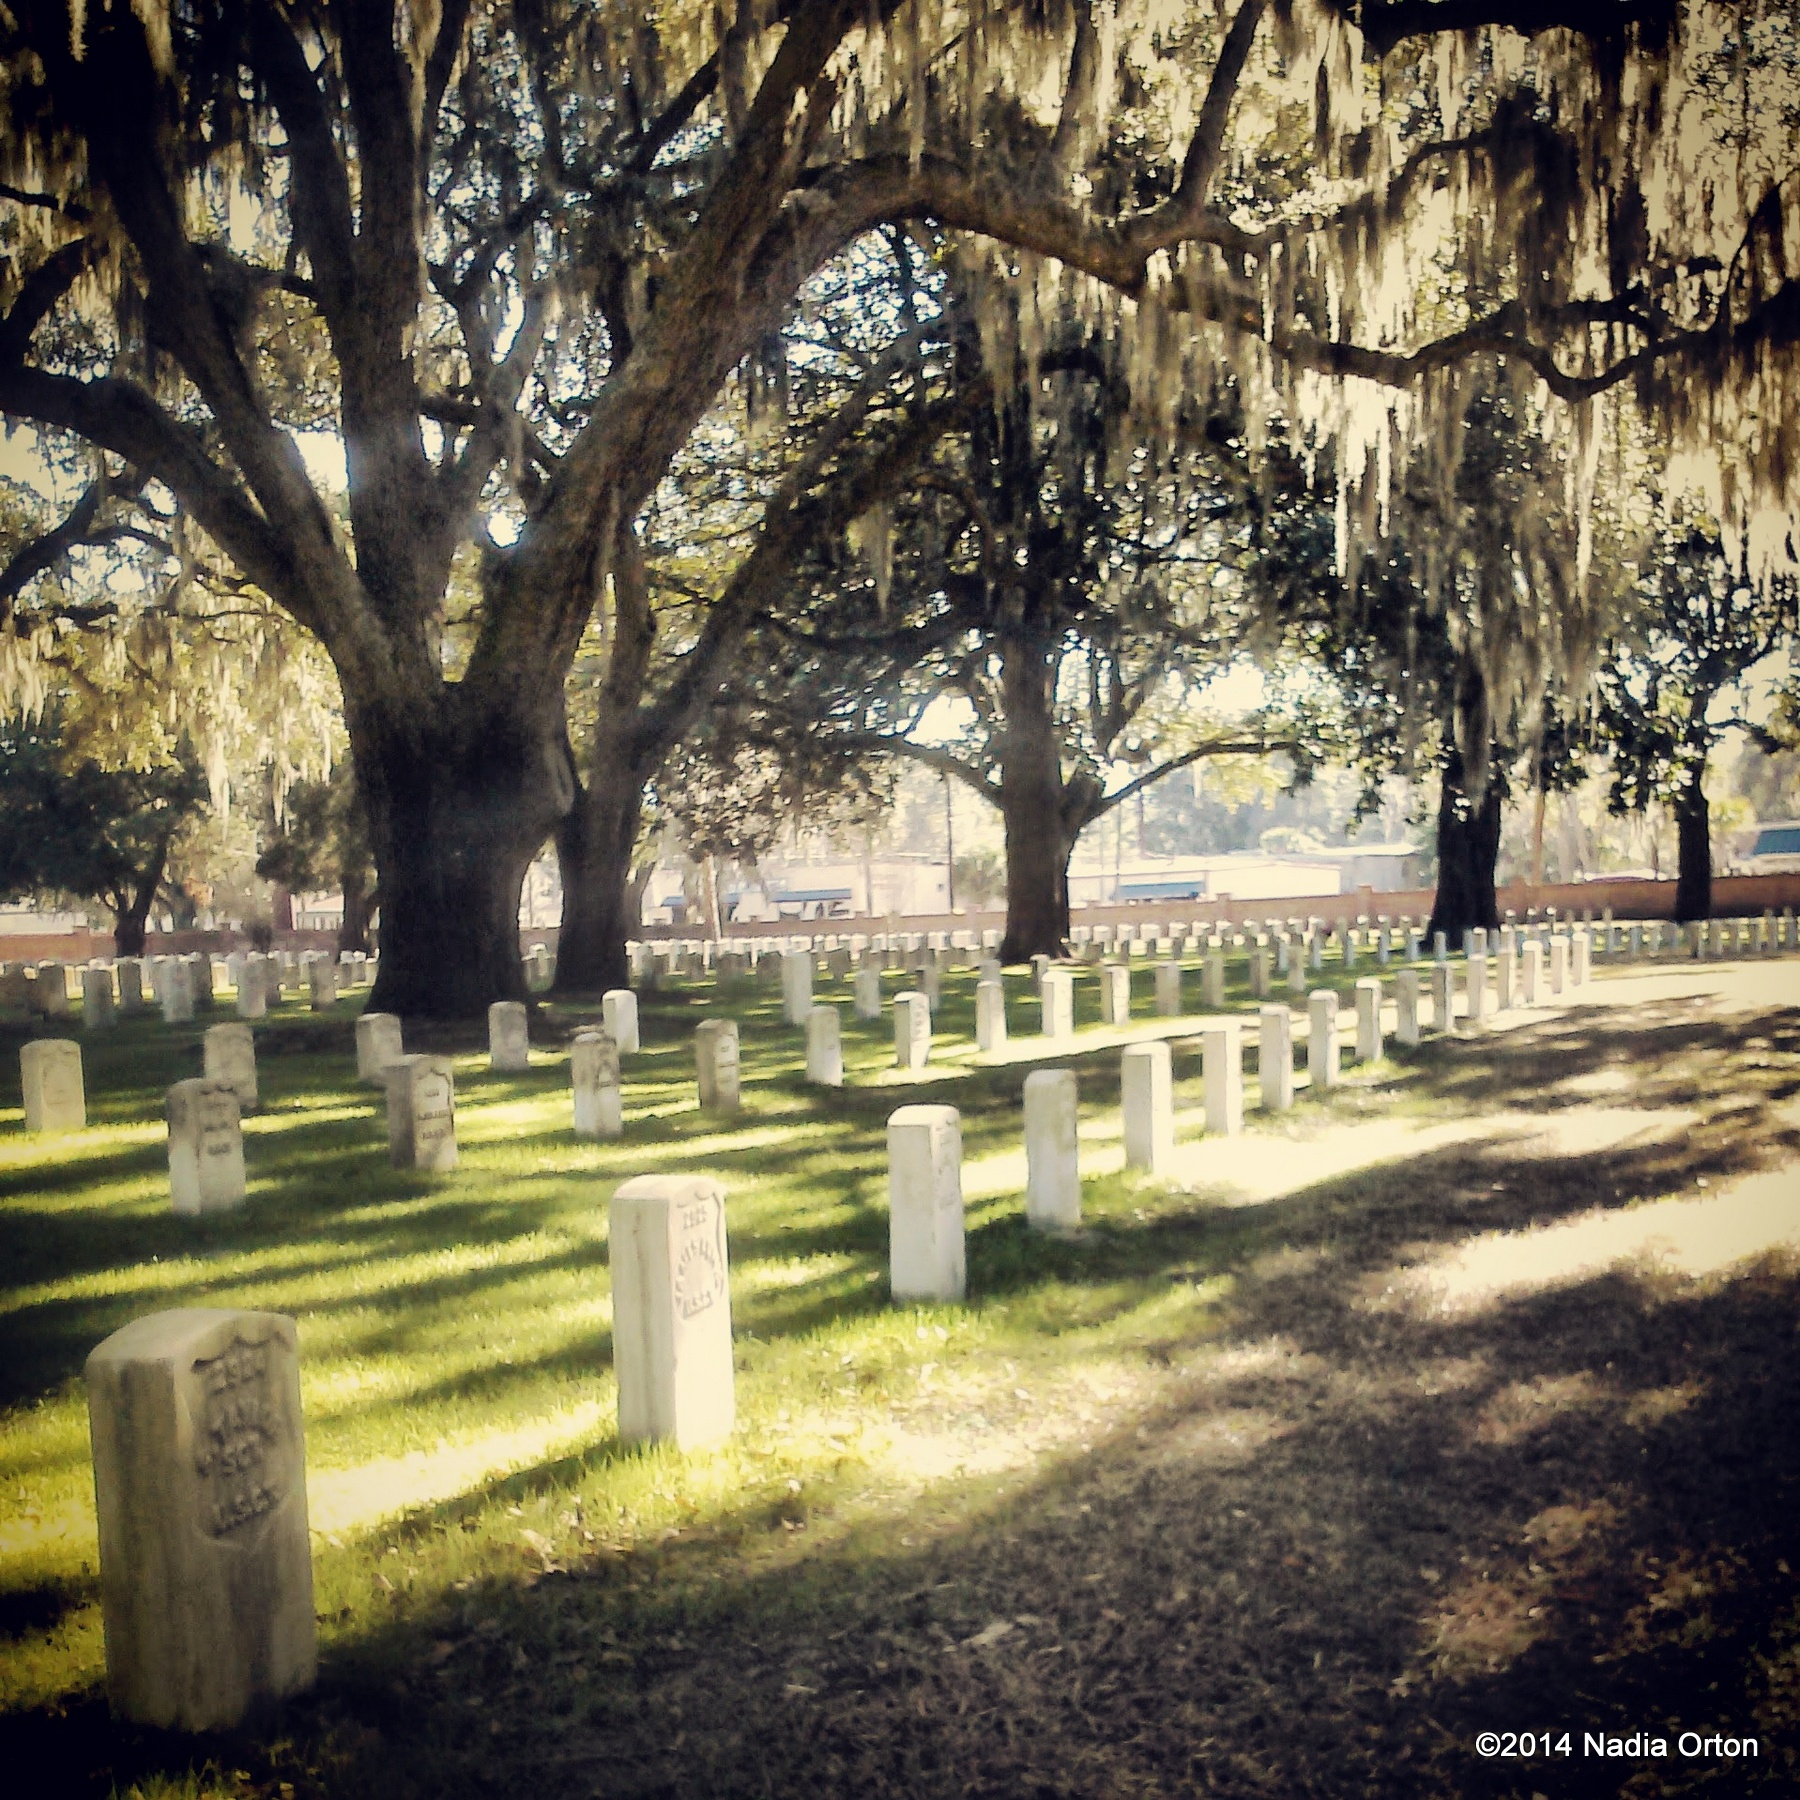 Protected: South Carolina Cemeteries